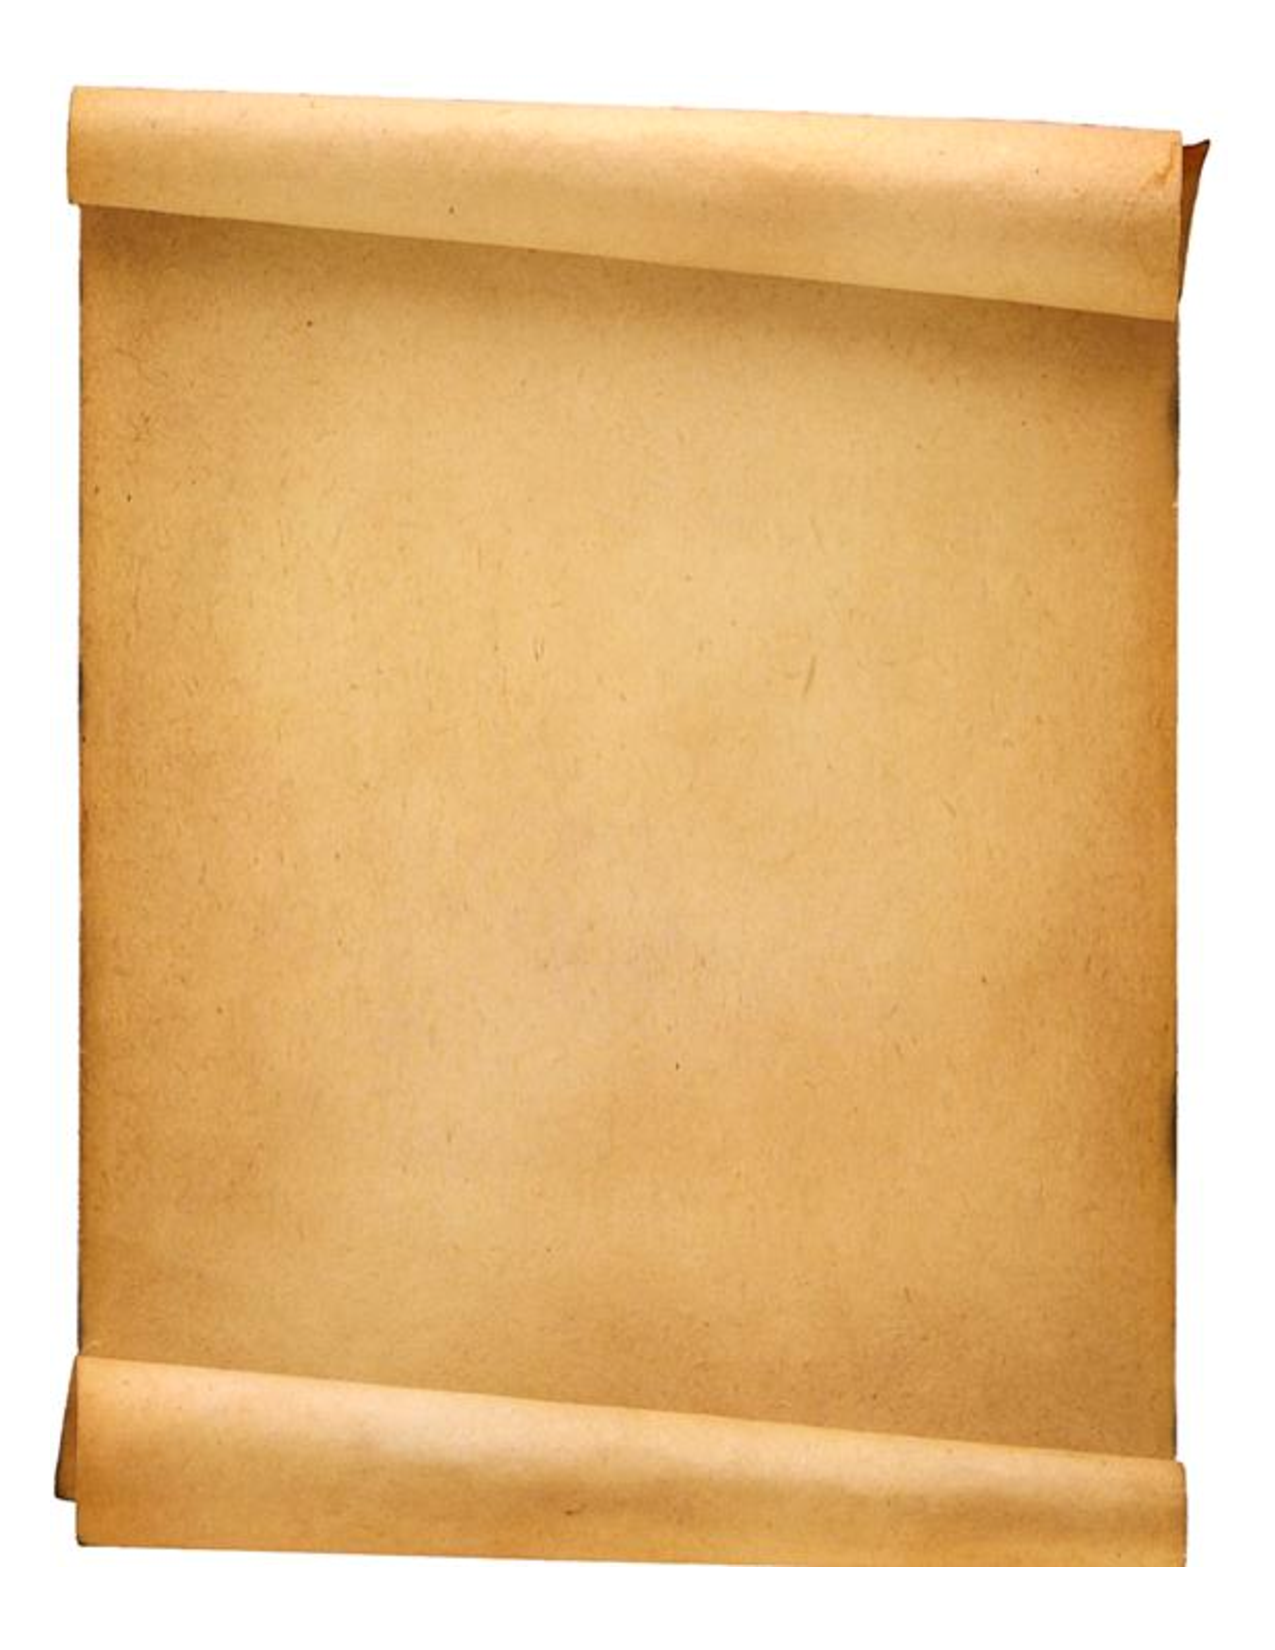 Blank Parchment Paper - Cliparts.co